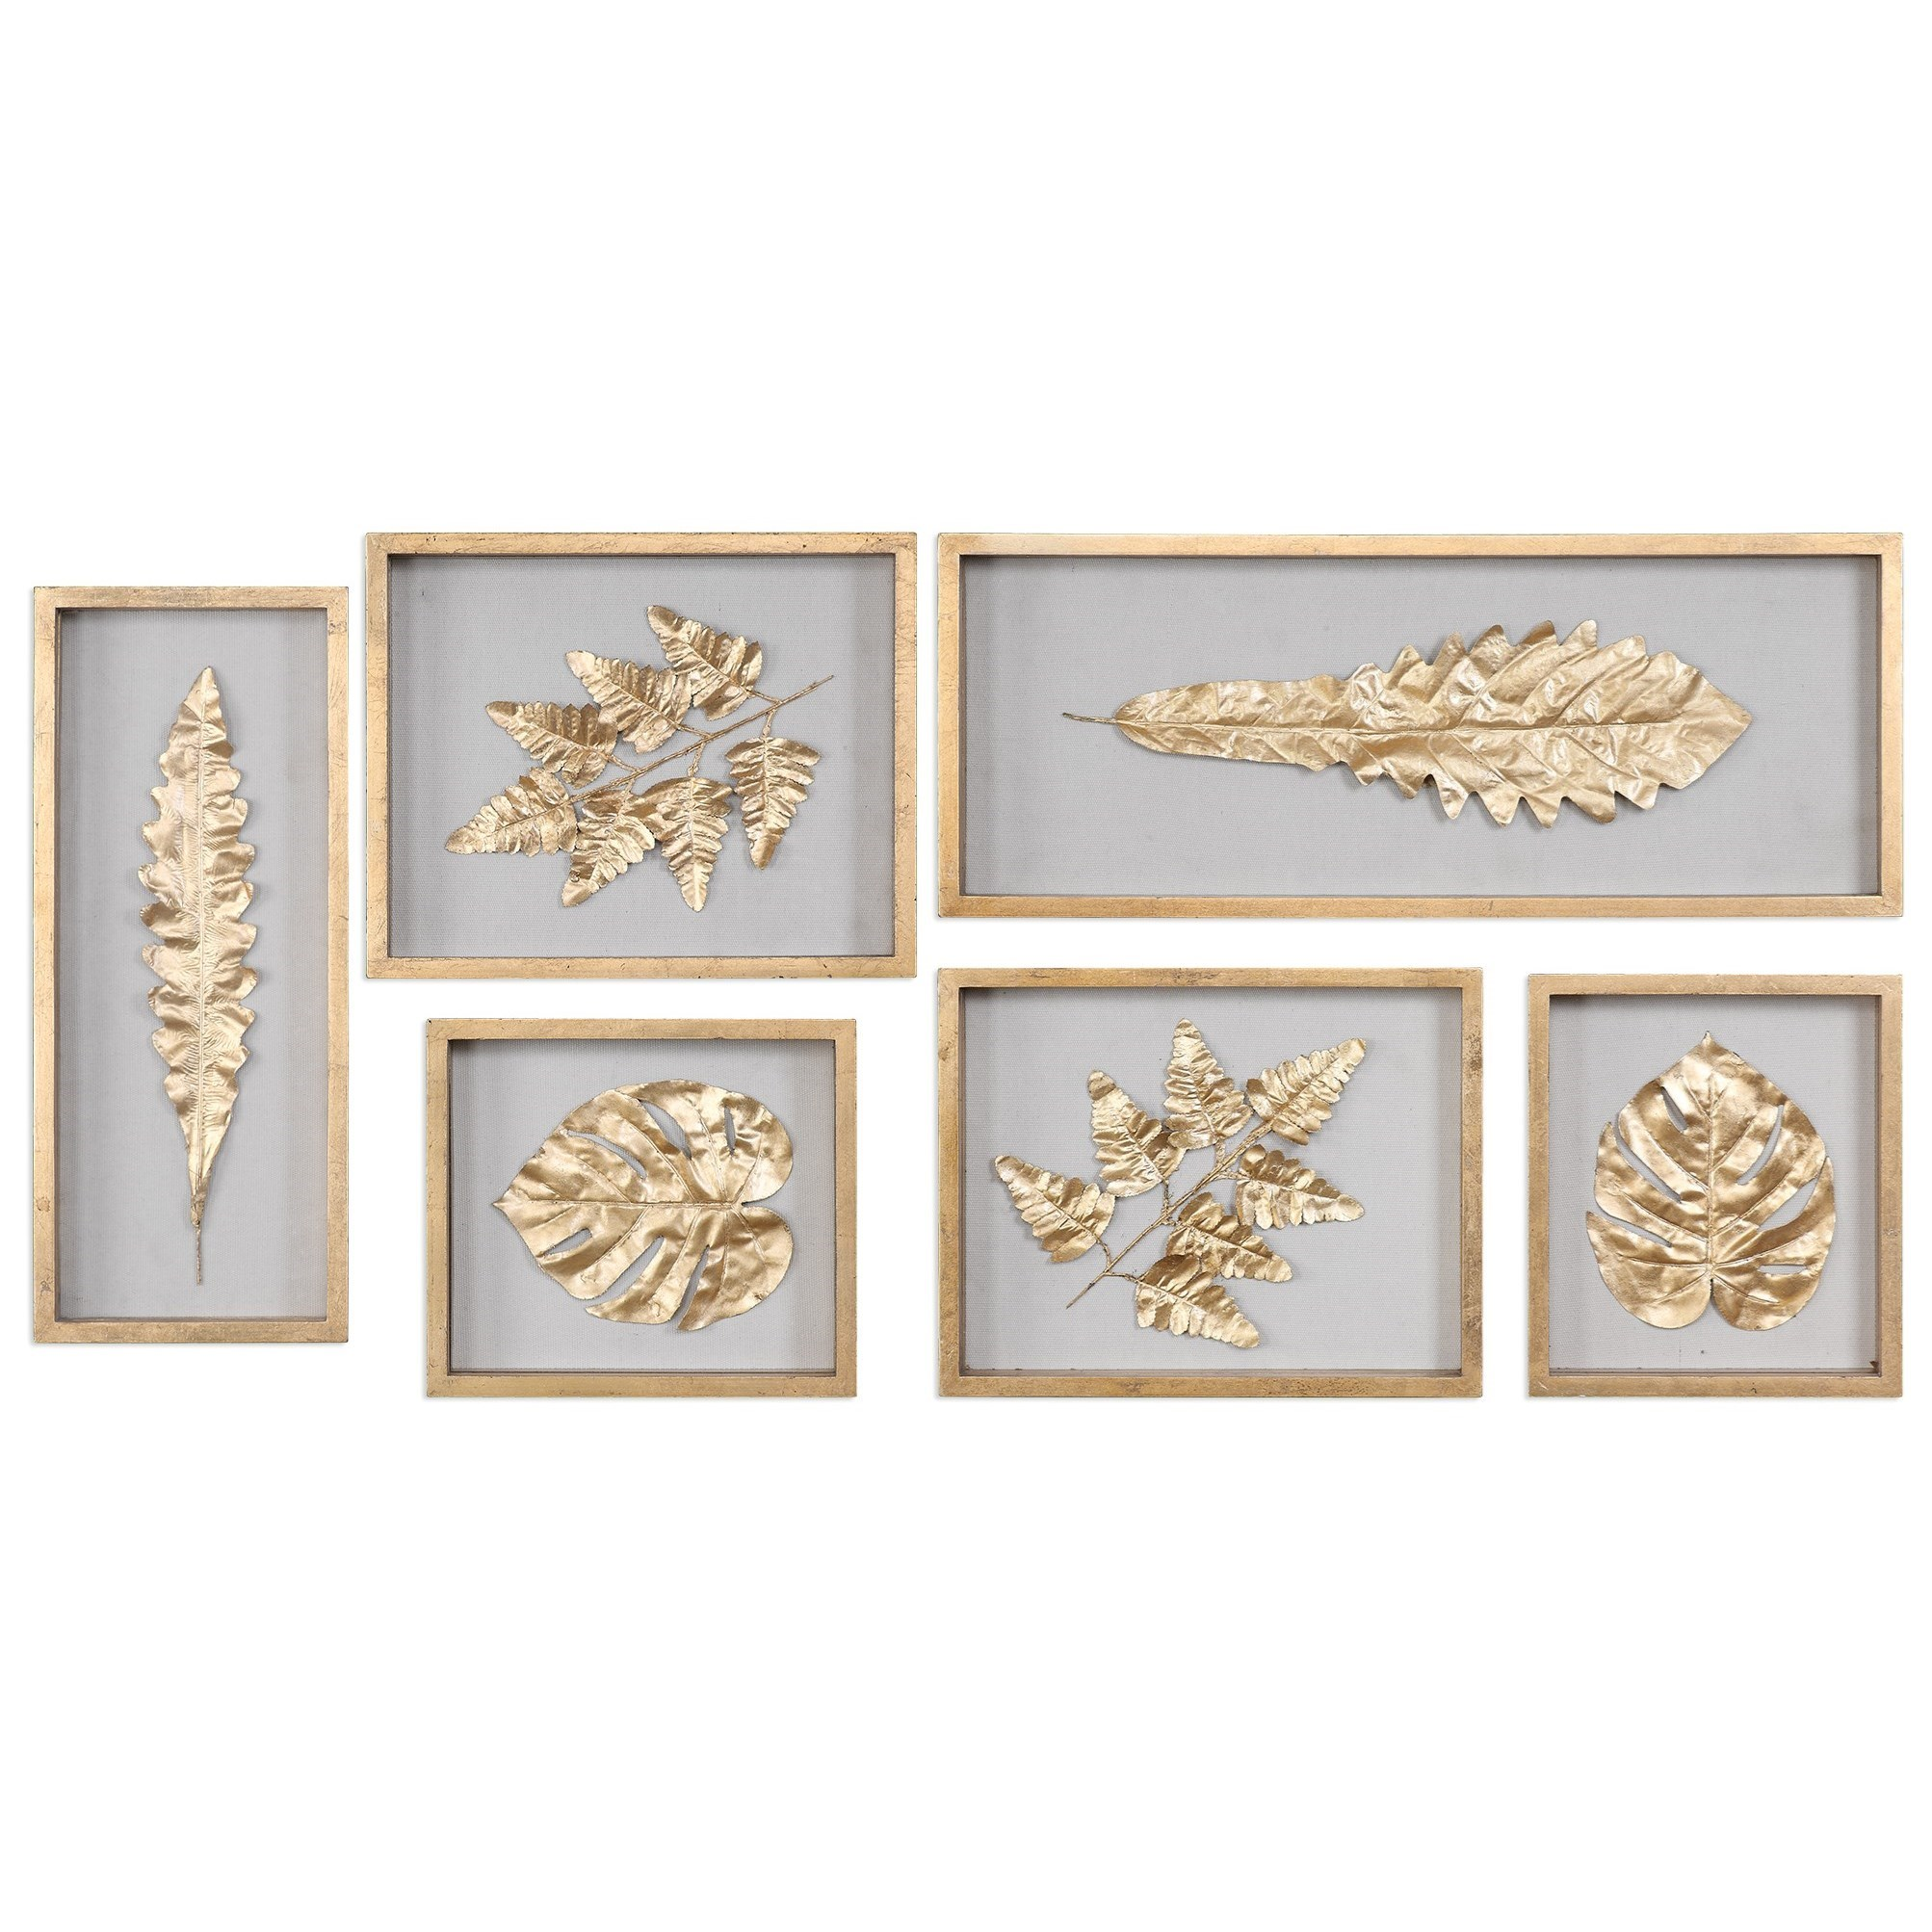 Alternative Wall Decor  Golden Leaves Shadow Box (Set of 6) by Uttermost at Upper Room Home Furnishings